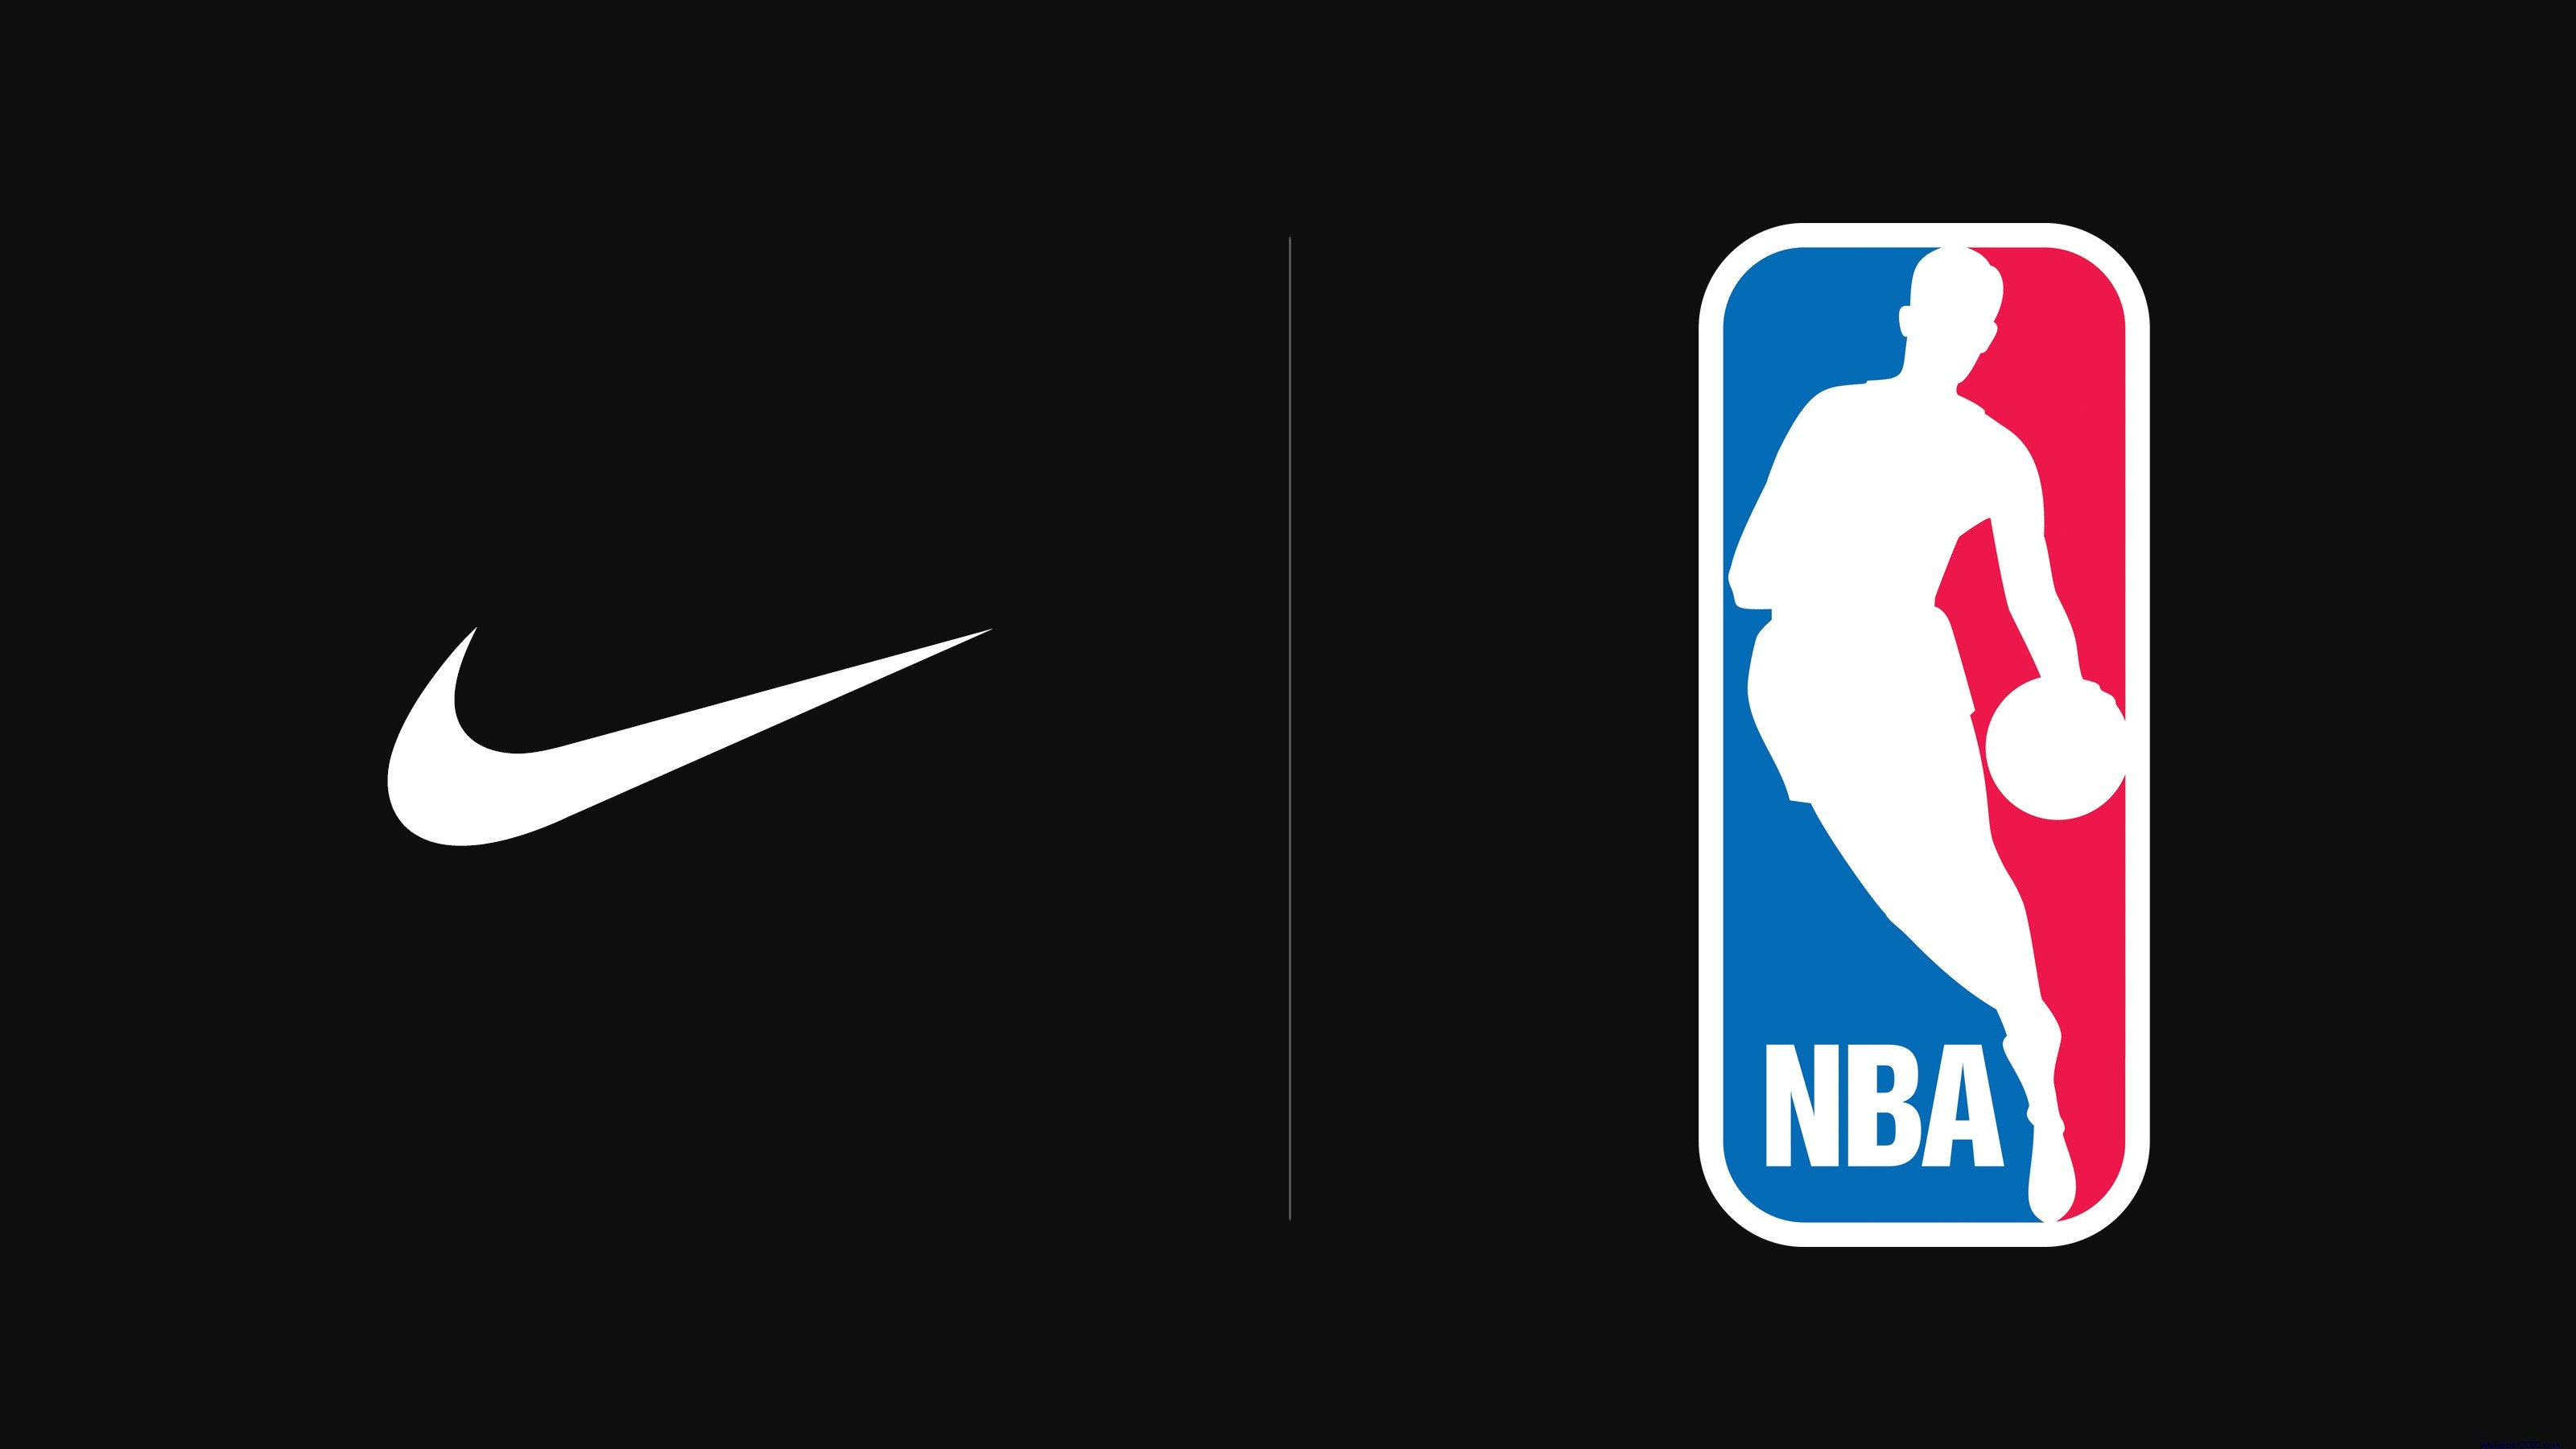 3200x1800 Nike NBA logo original wallpaper